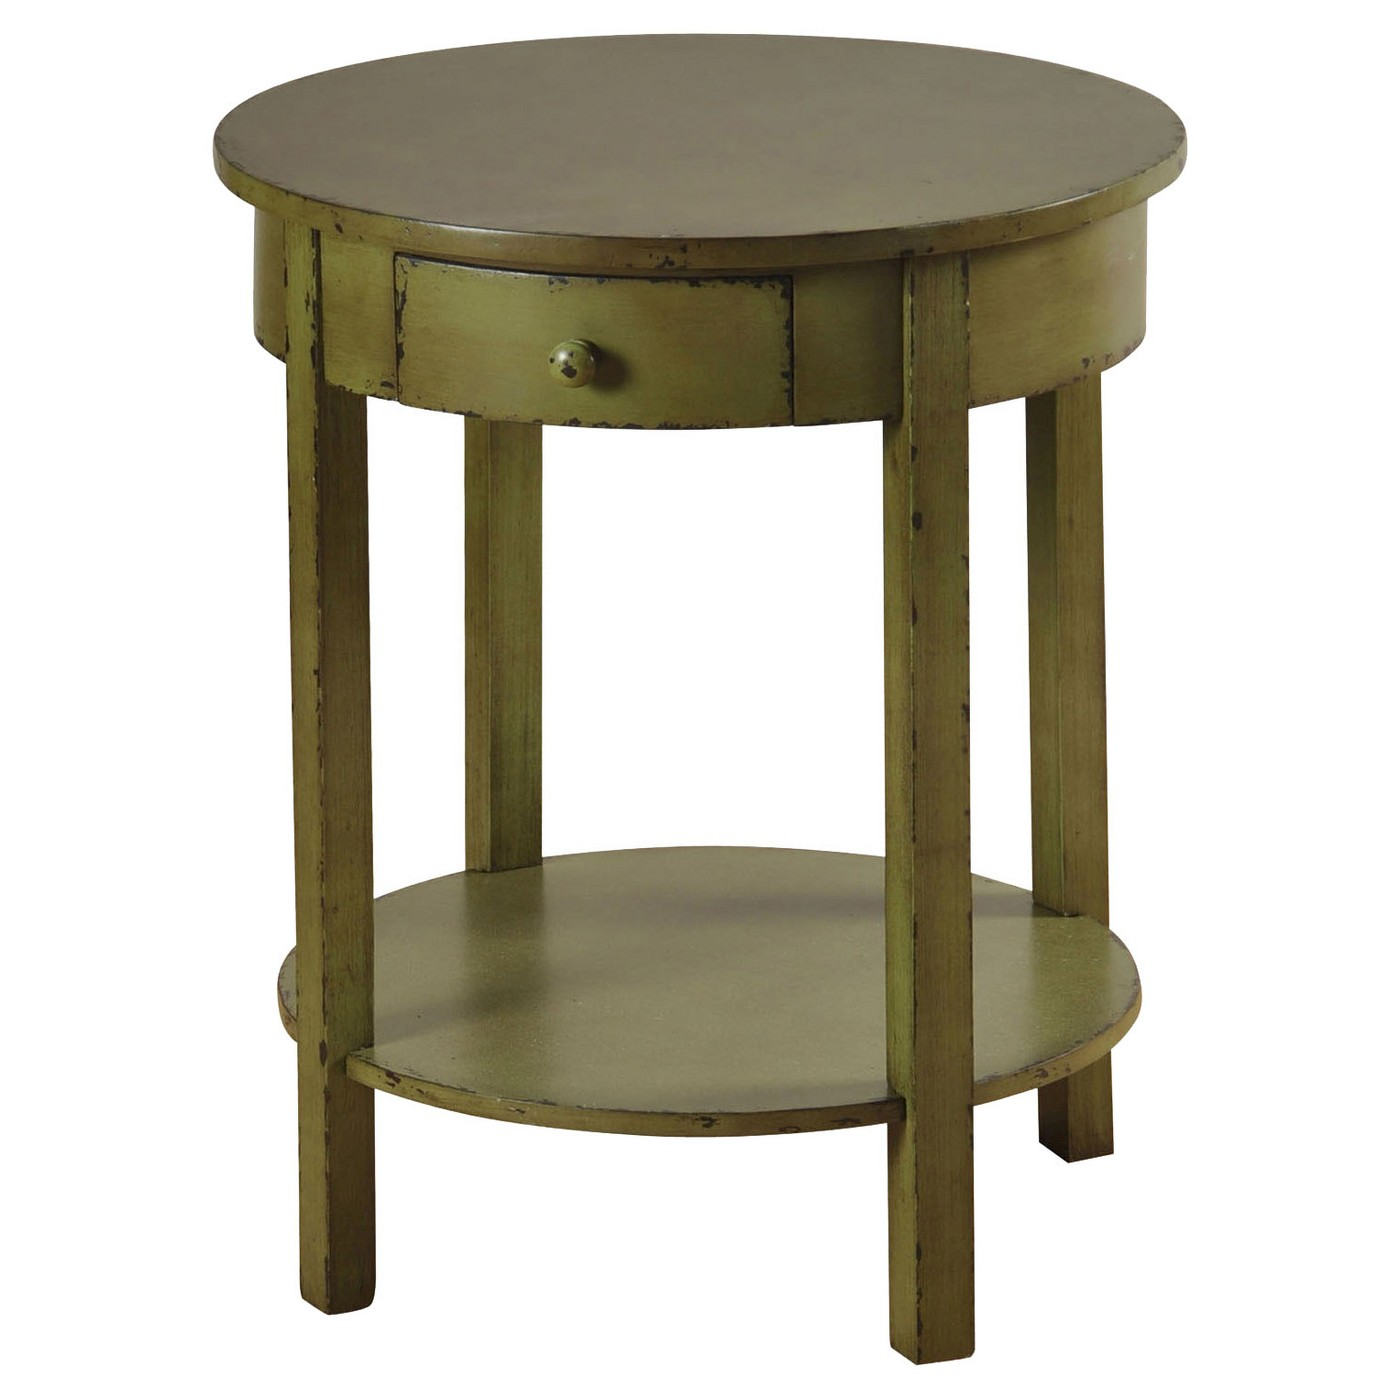 splendid yellow accent table target goedkoop html tabletop contents tablet tablespoon theories mac latex dream houder word toetsenbord wordpress kopen mill cornstarch met beste